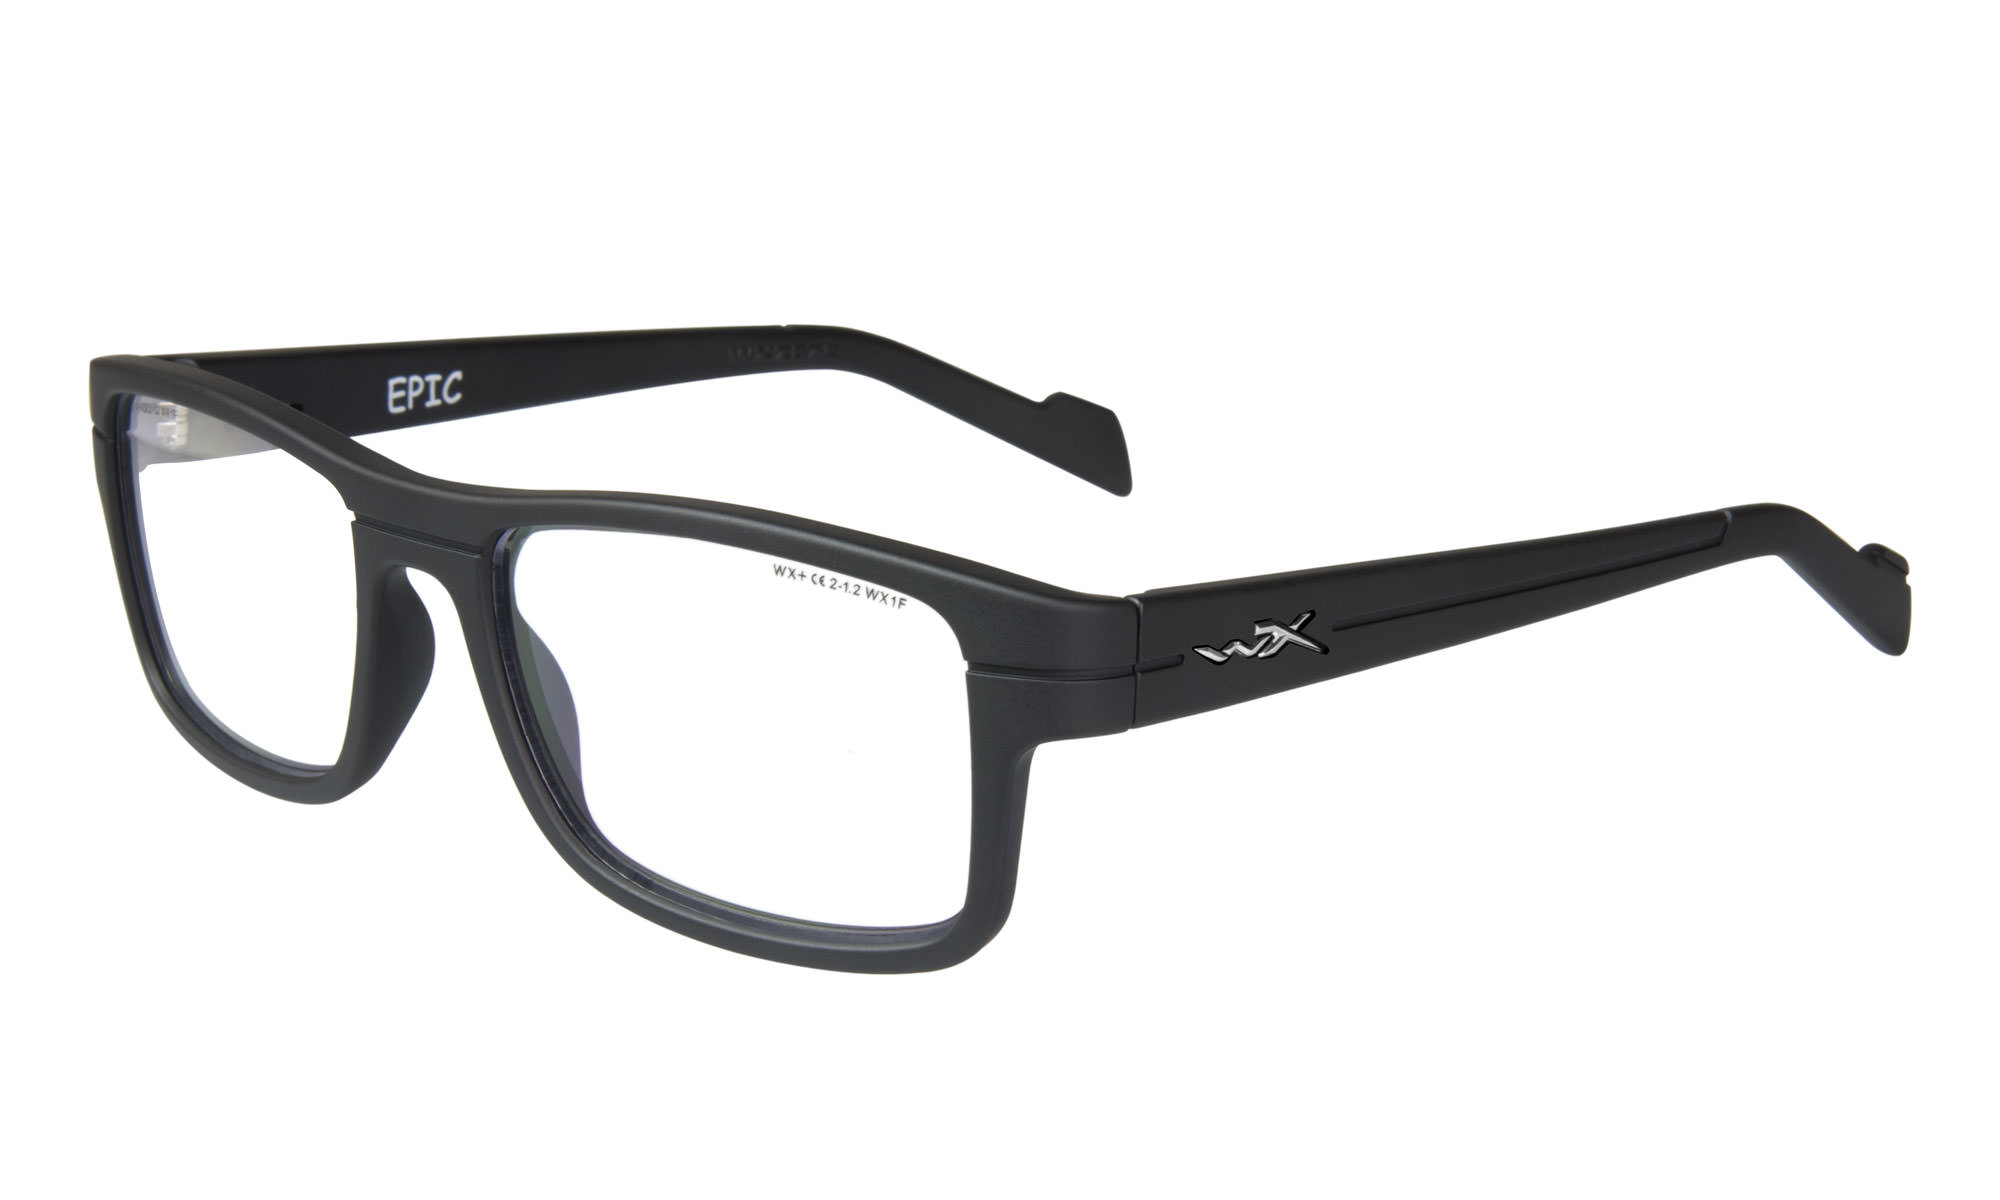 Wiley X Sunglasses and Safety Glasses - USA Online Store